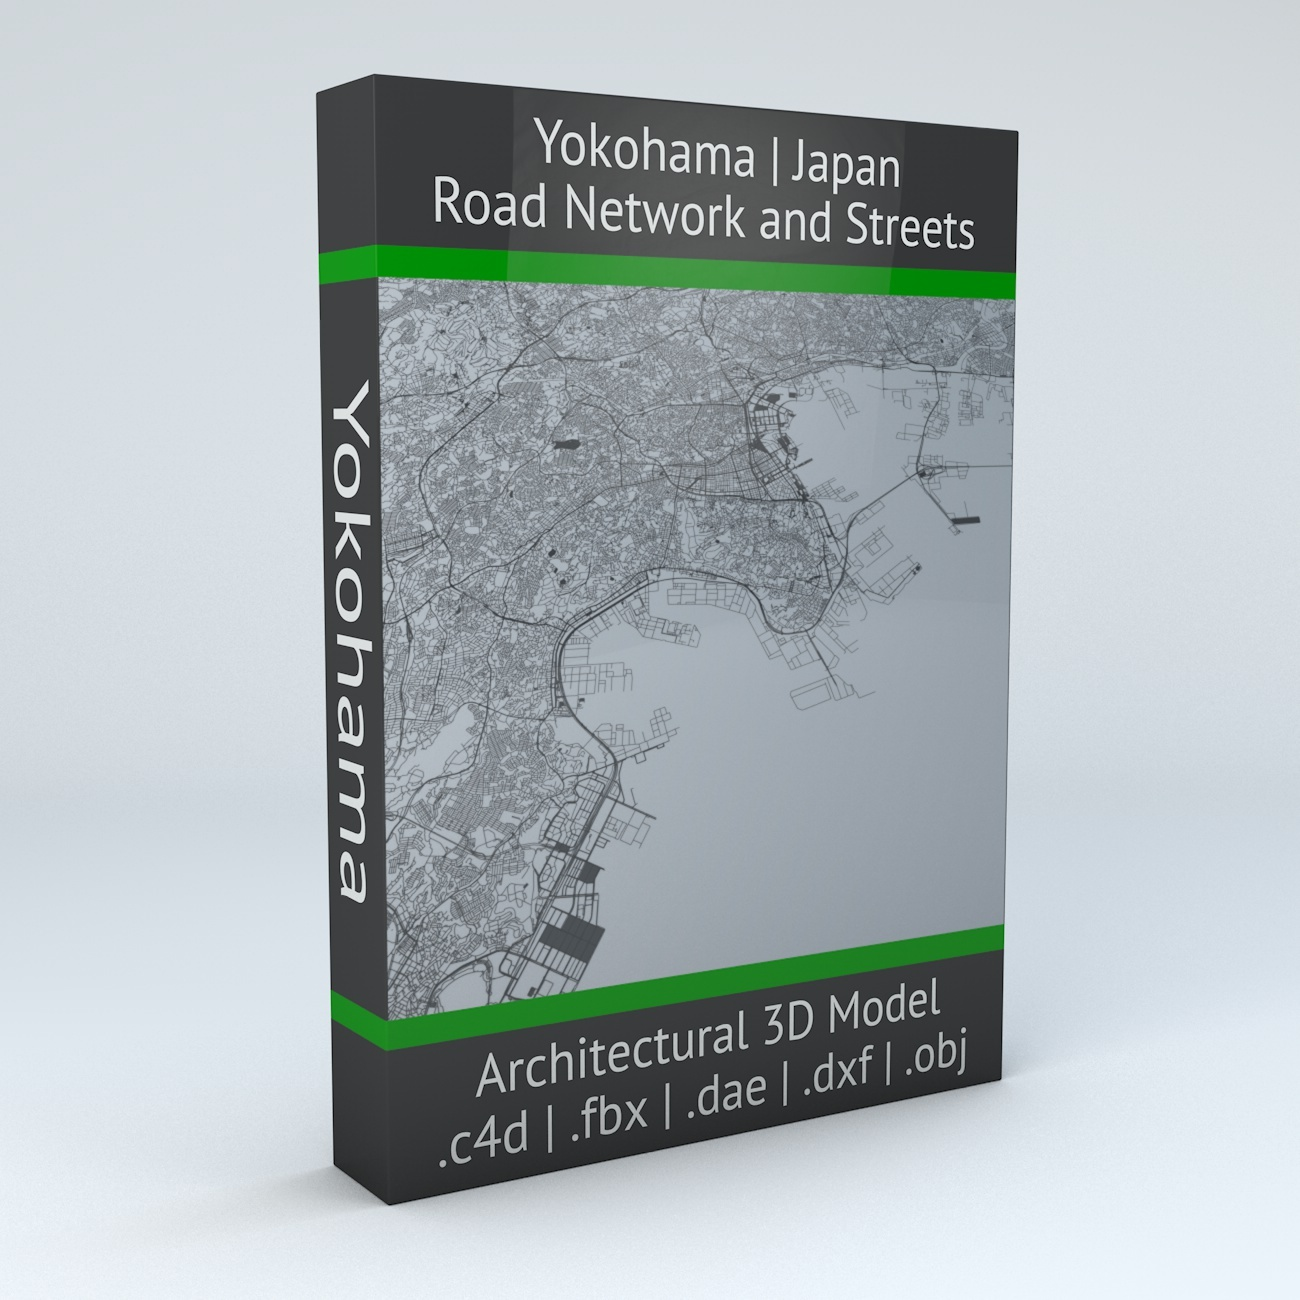 Yokohama Road Network Architectural 3D Model